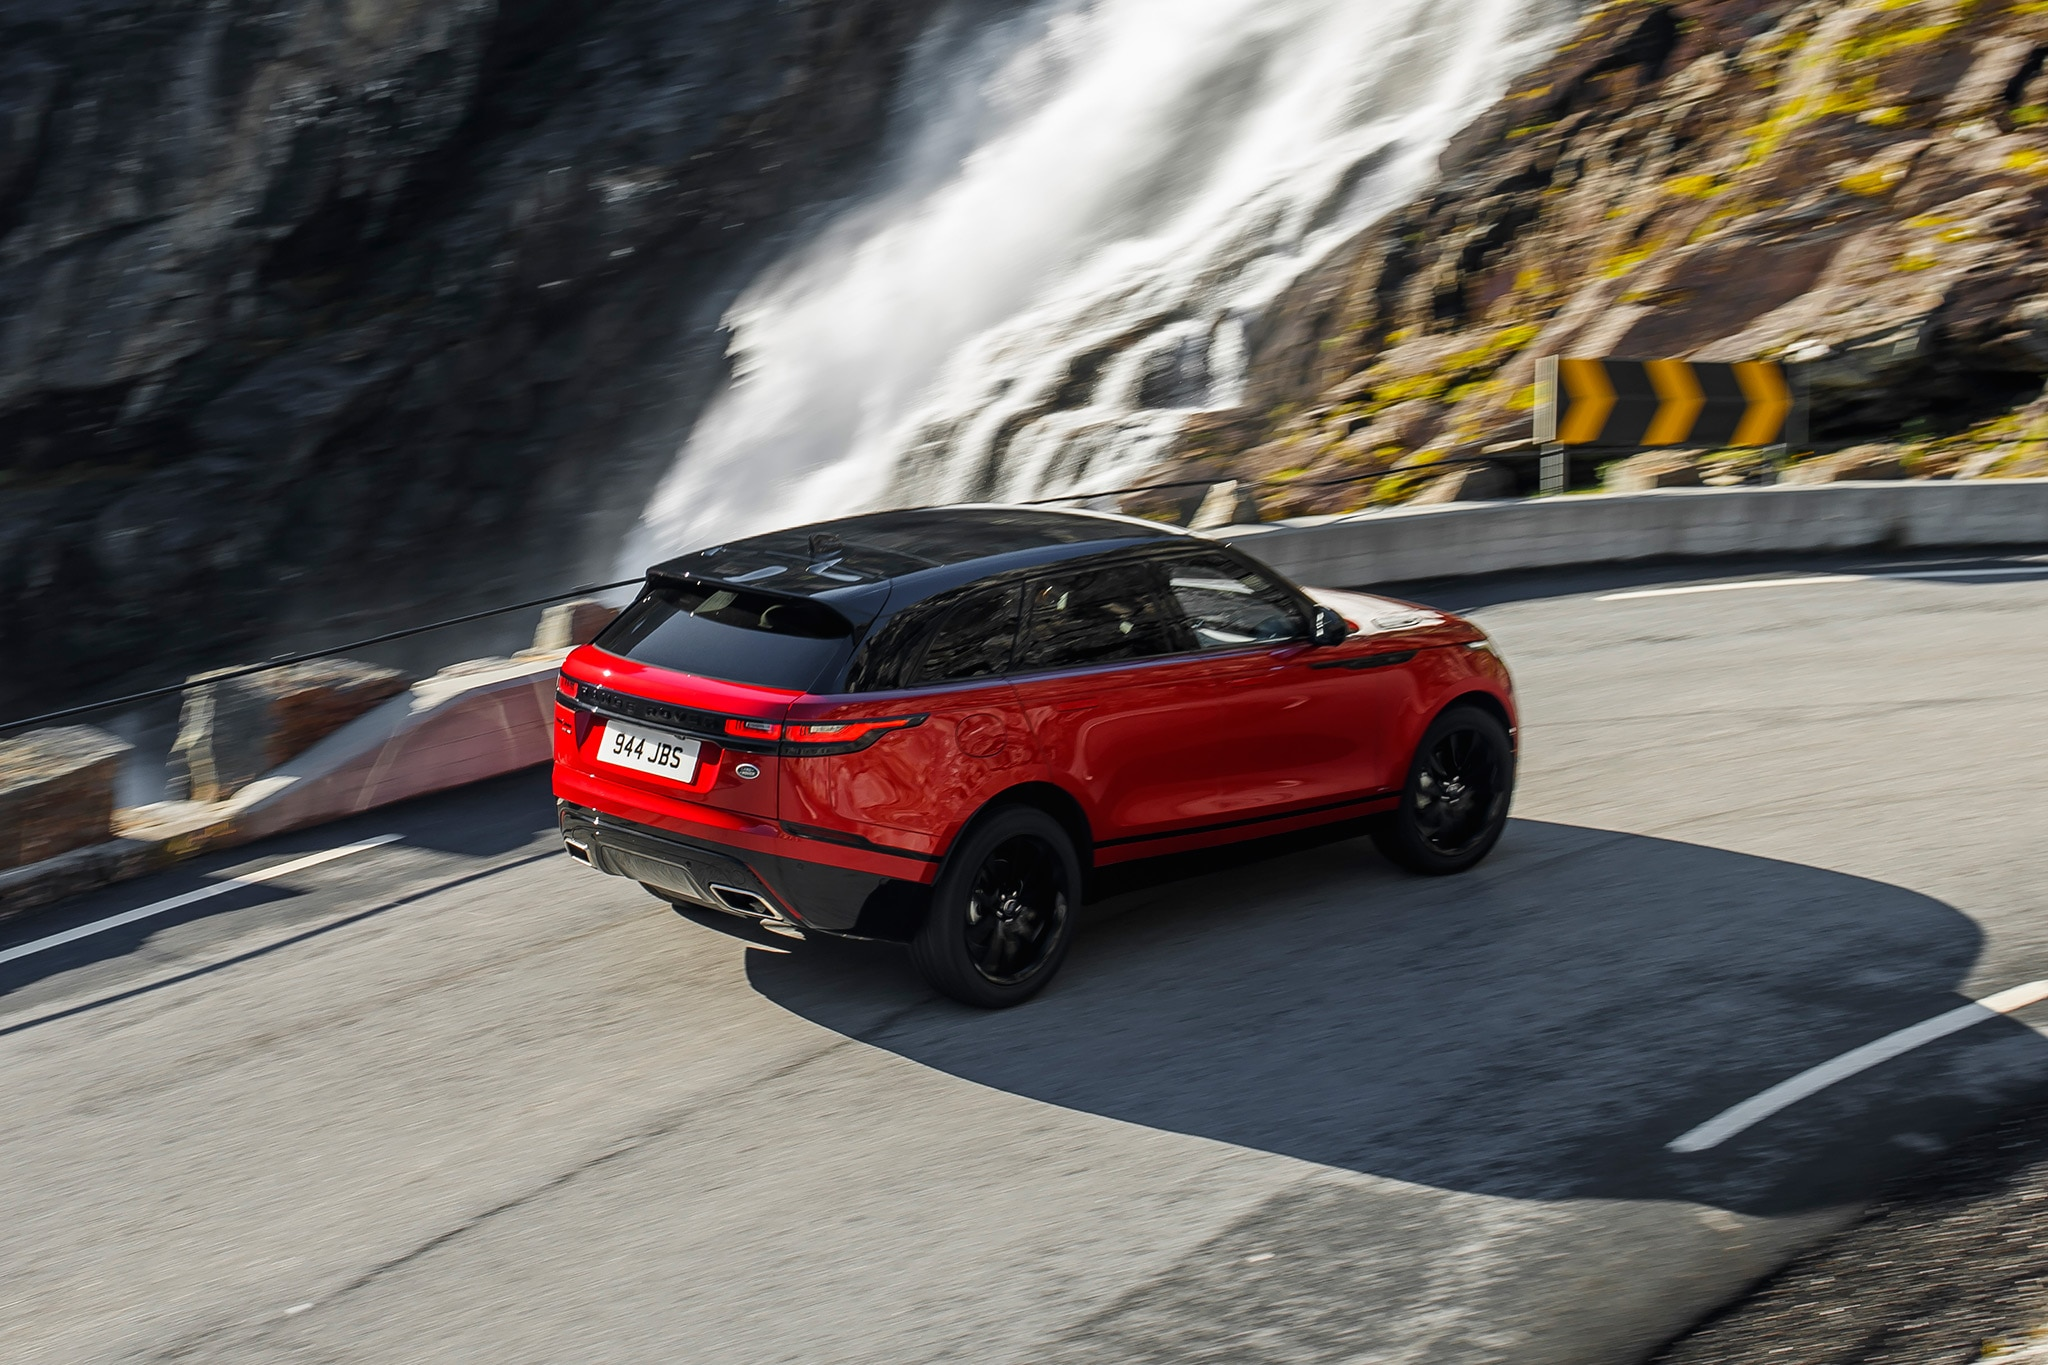 2018 land rover suv. beautiful suv show more in 2018 land rover suv